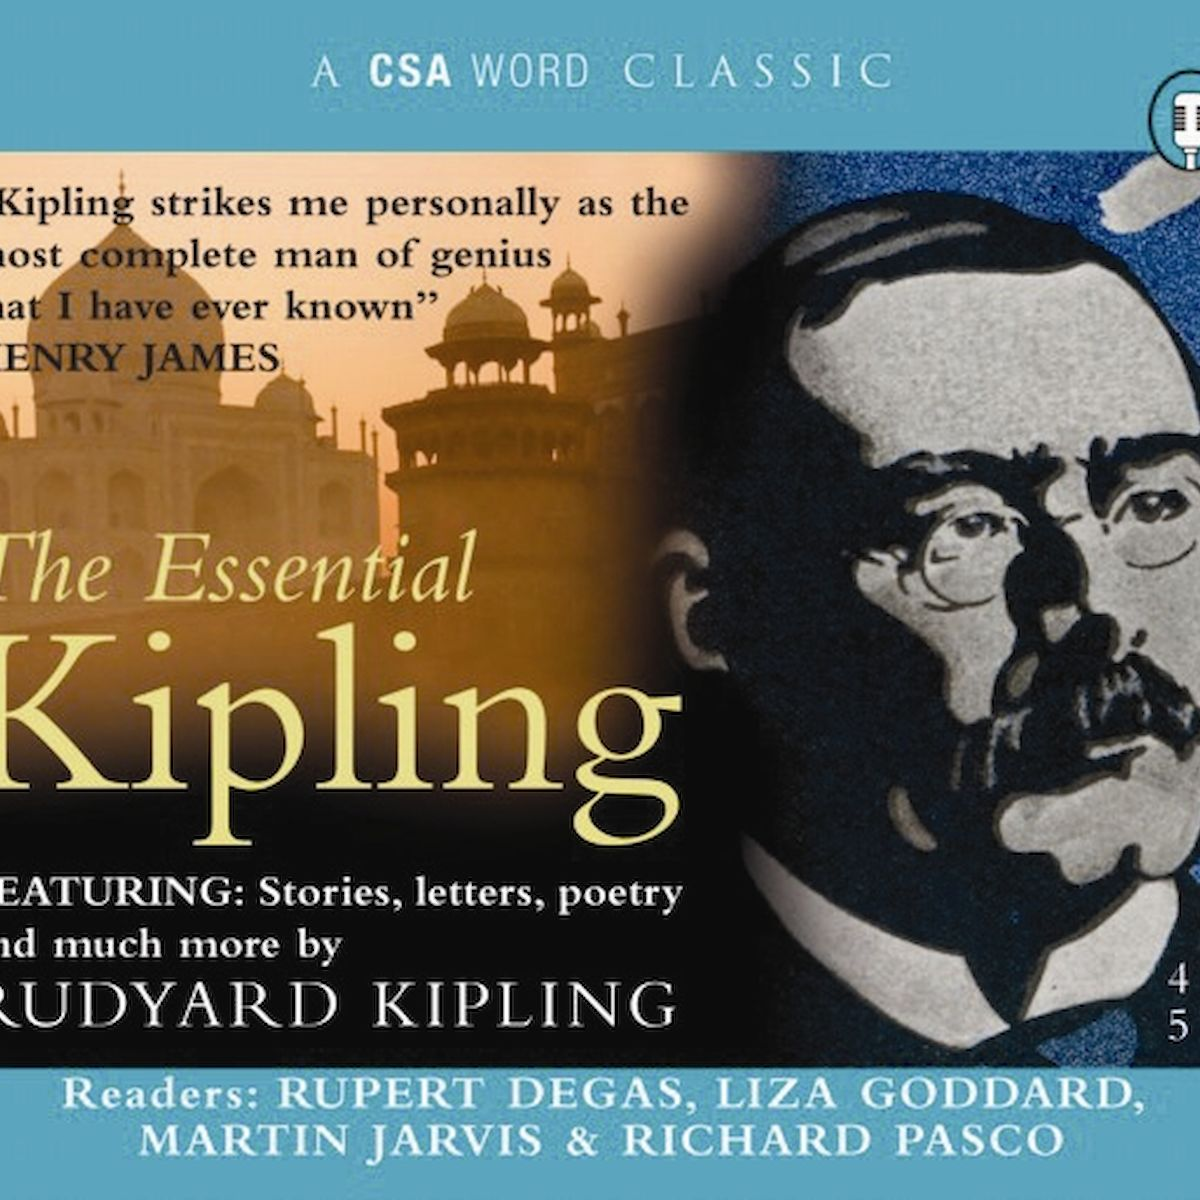 an analysis of the rudyard kipling and the opinion of henry james